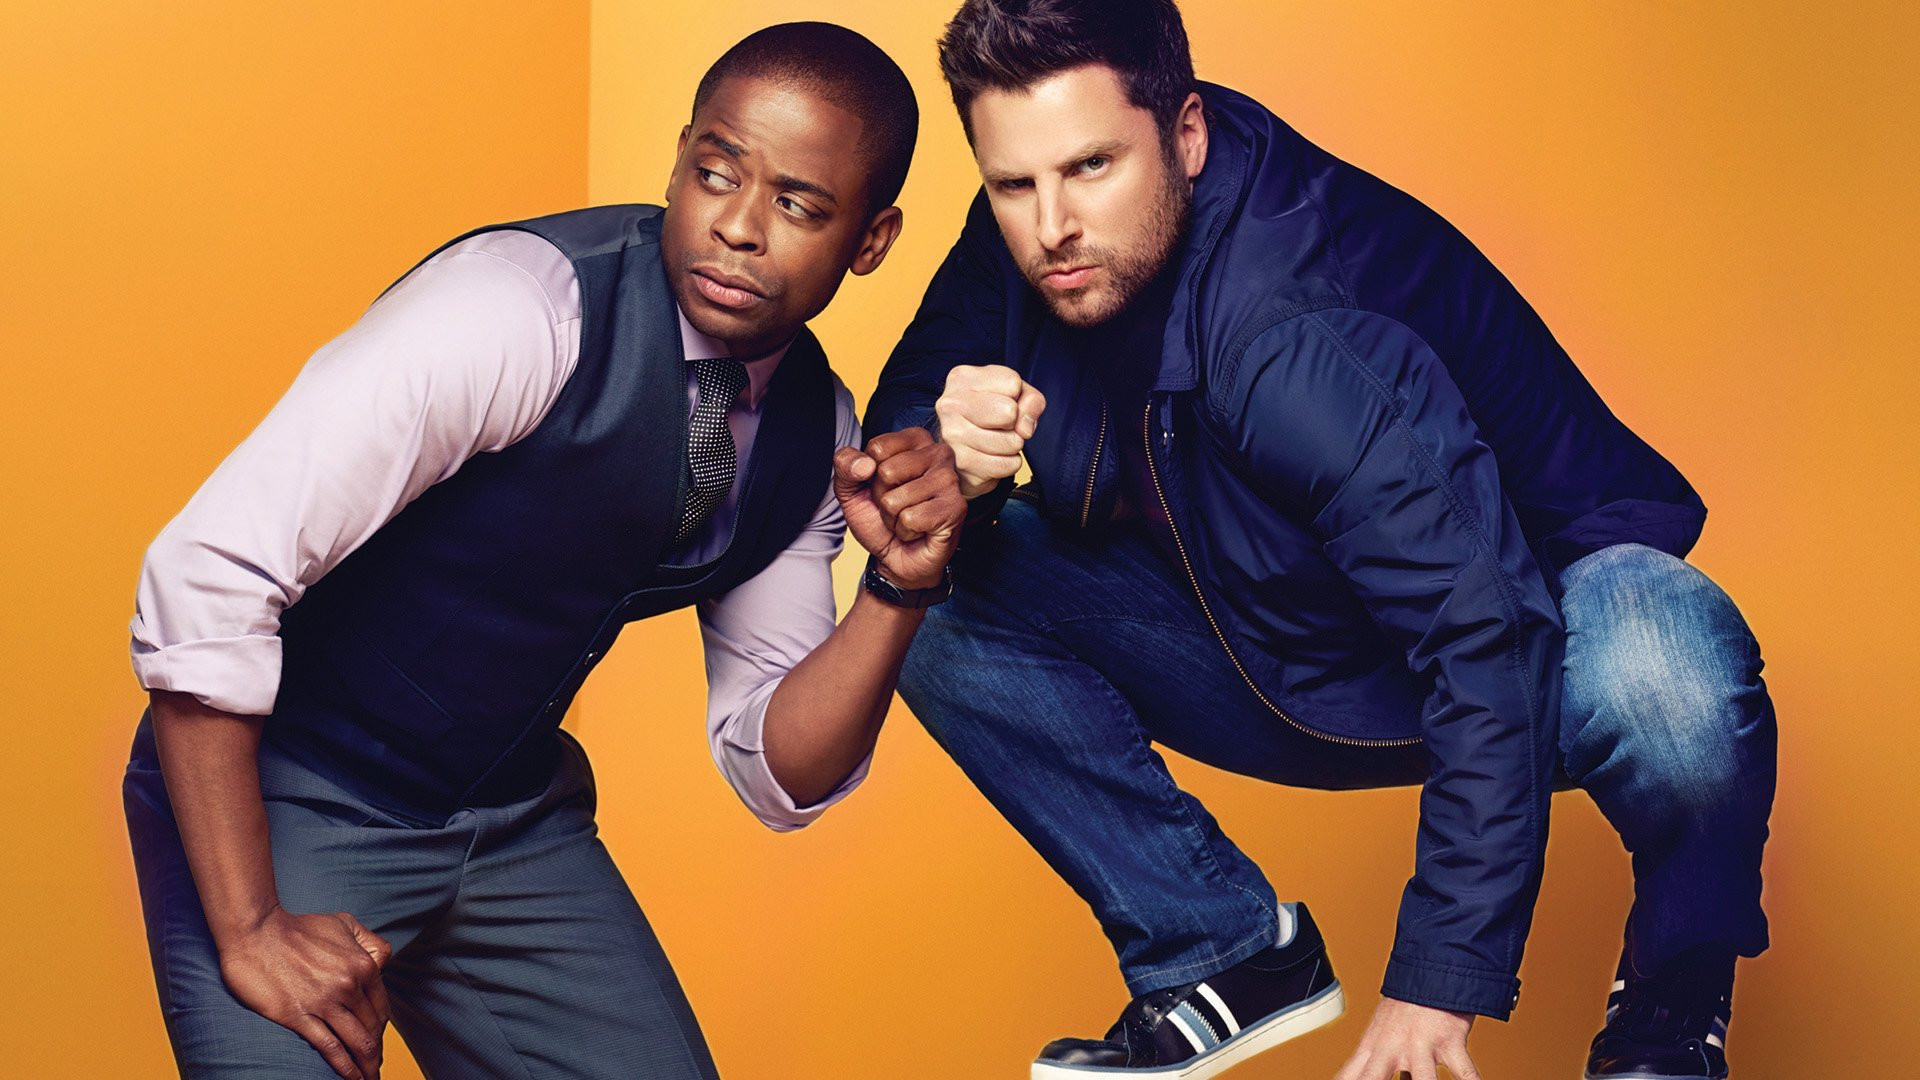 Friendship fist bump by Shawn and Gus (Psych)